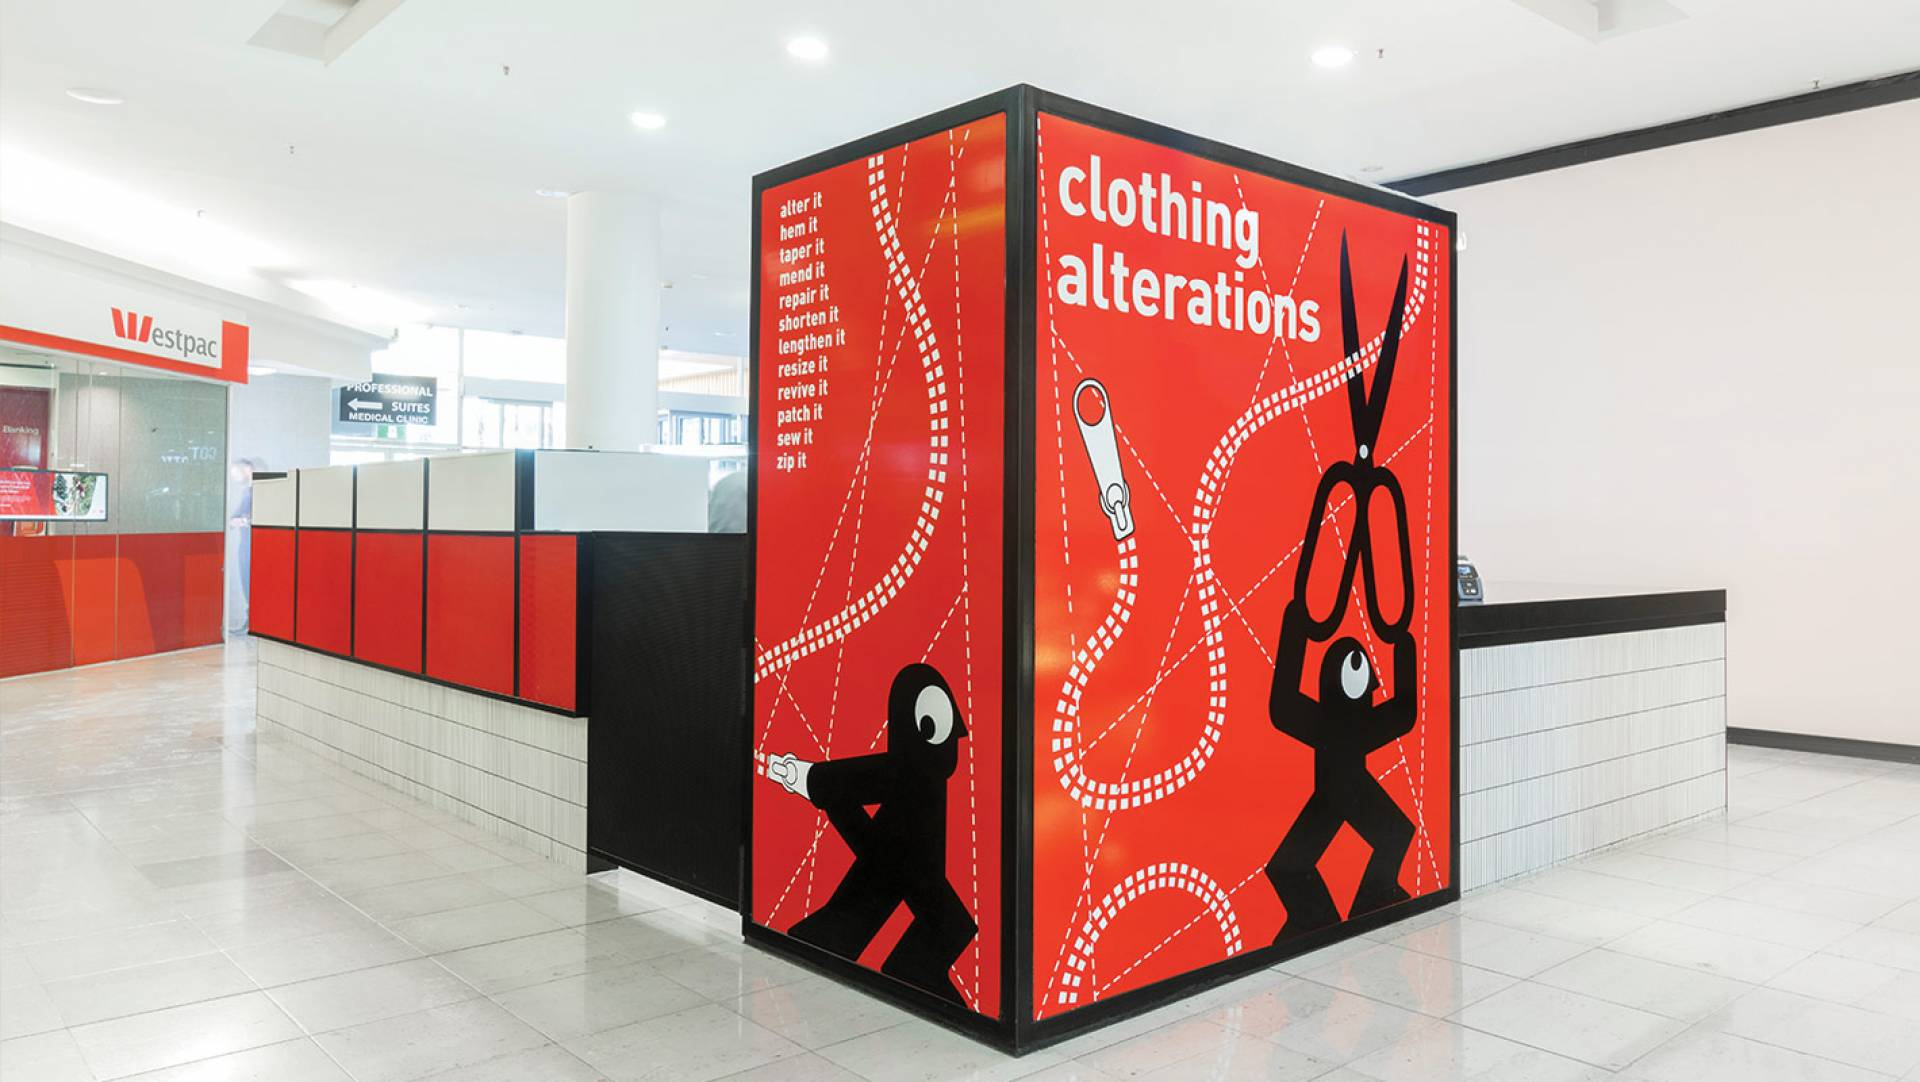 Alter It Clothing Alterations - Kiosk Design